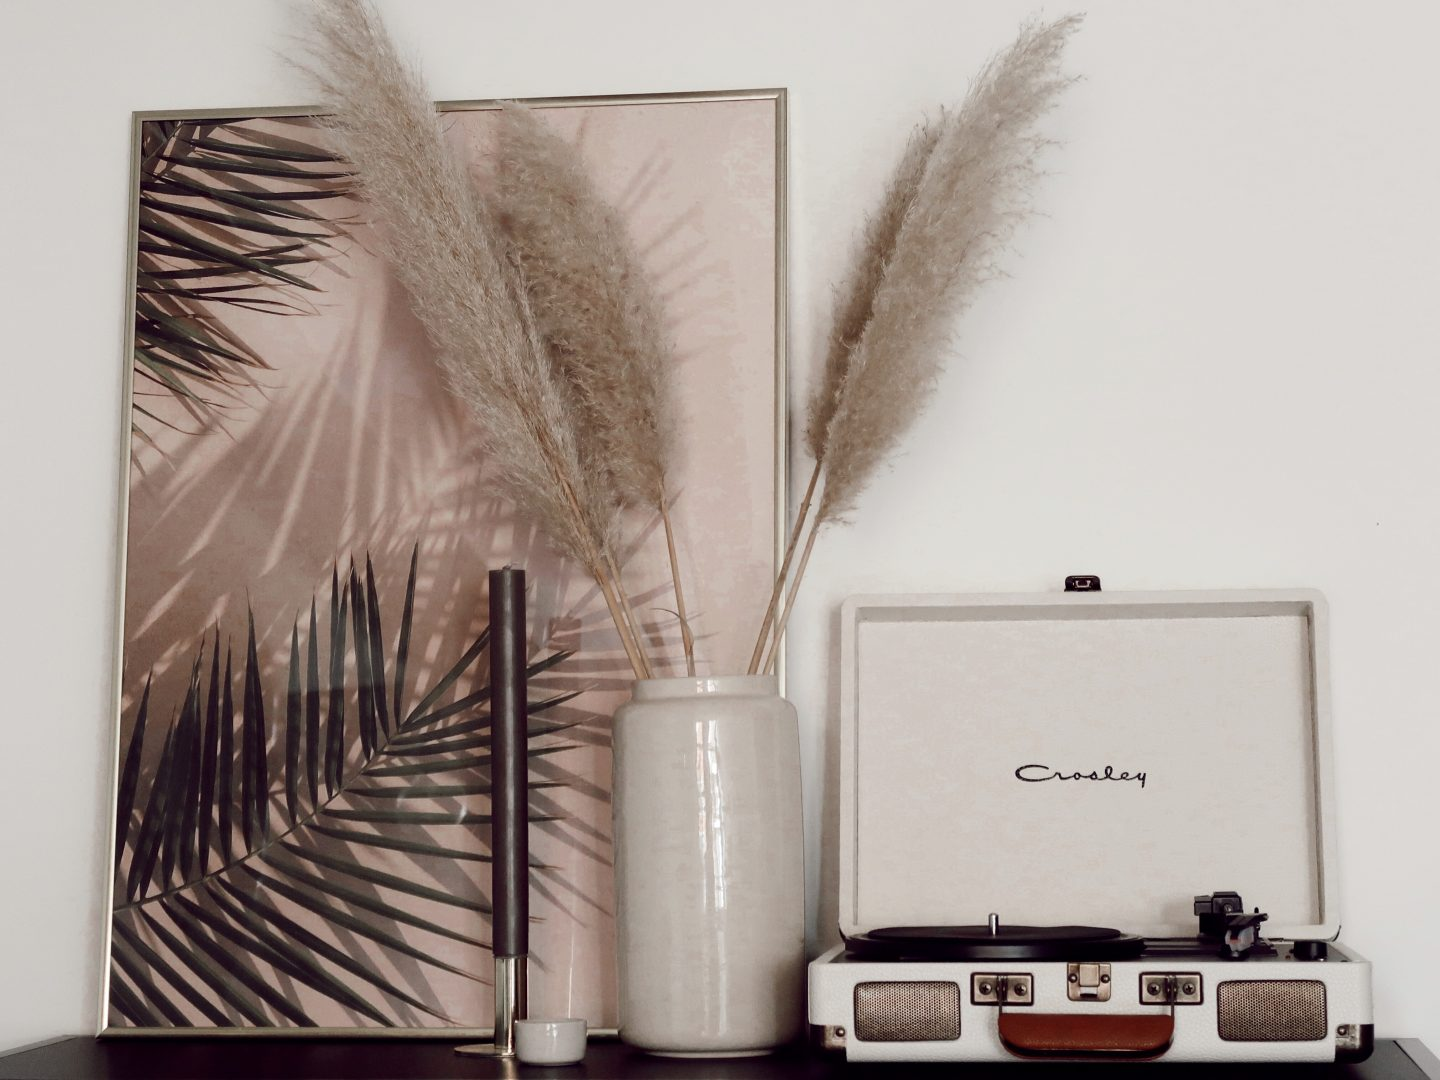 favorite corners in our home - ByMery